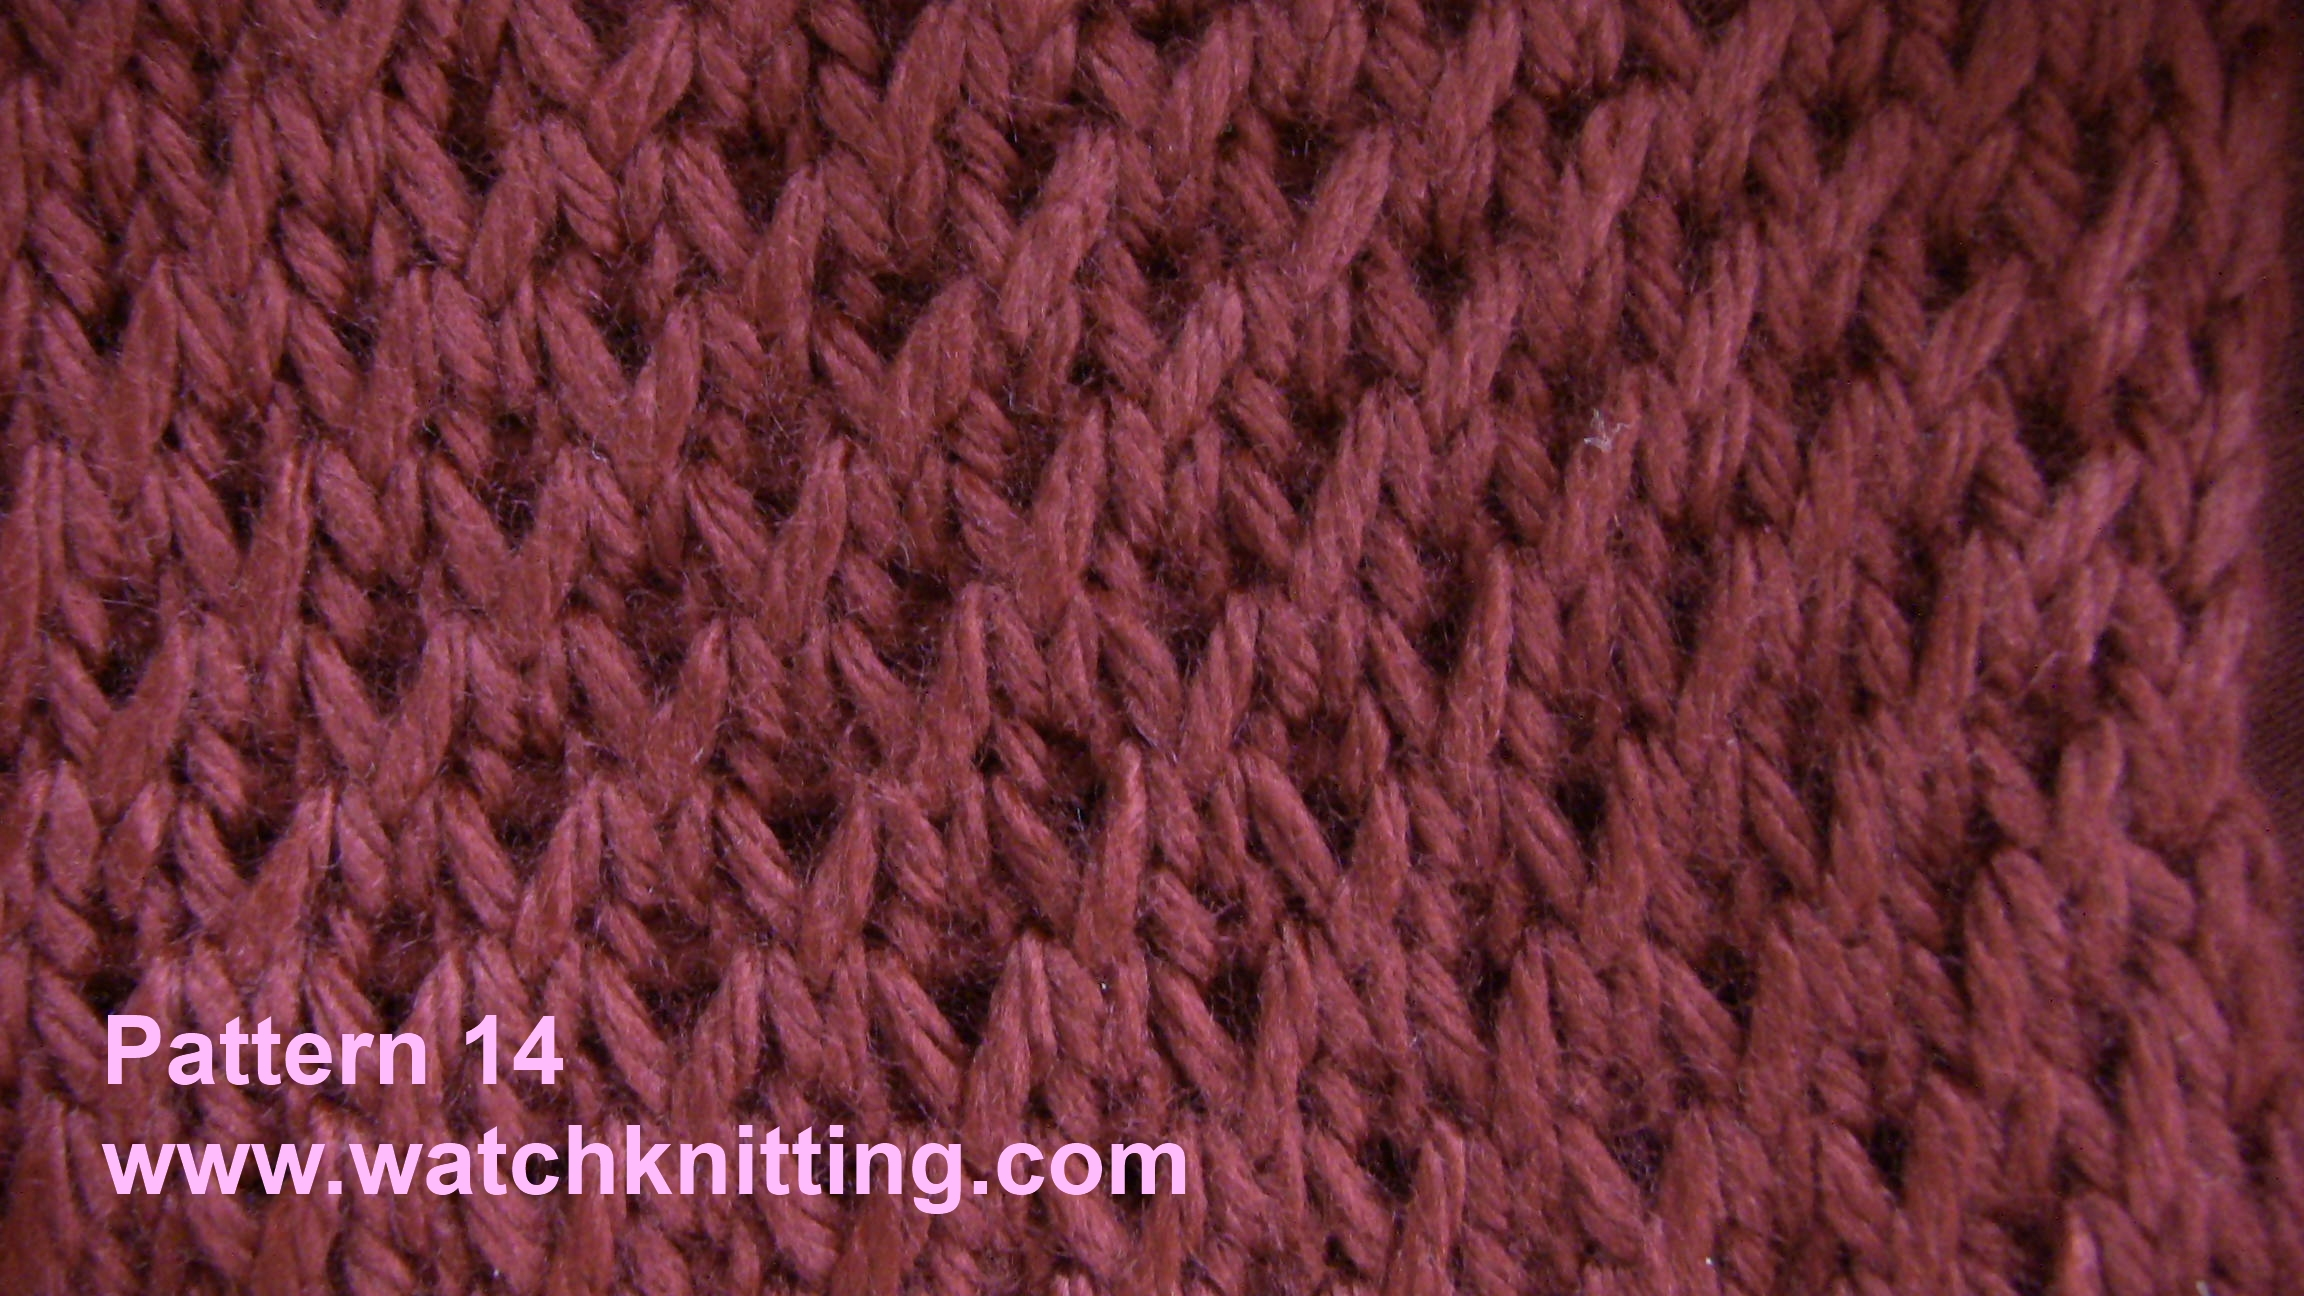 Simple Knitting Patterns : Pattern 14-Simple Knitting Patterns-www.watchknitting.com